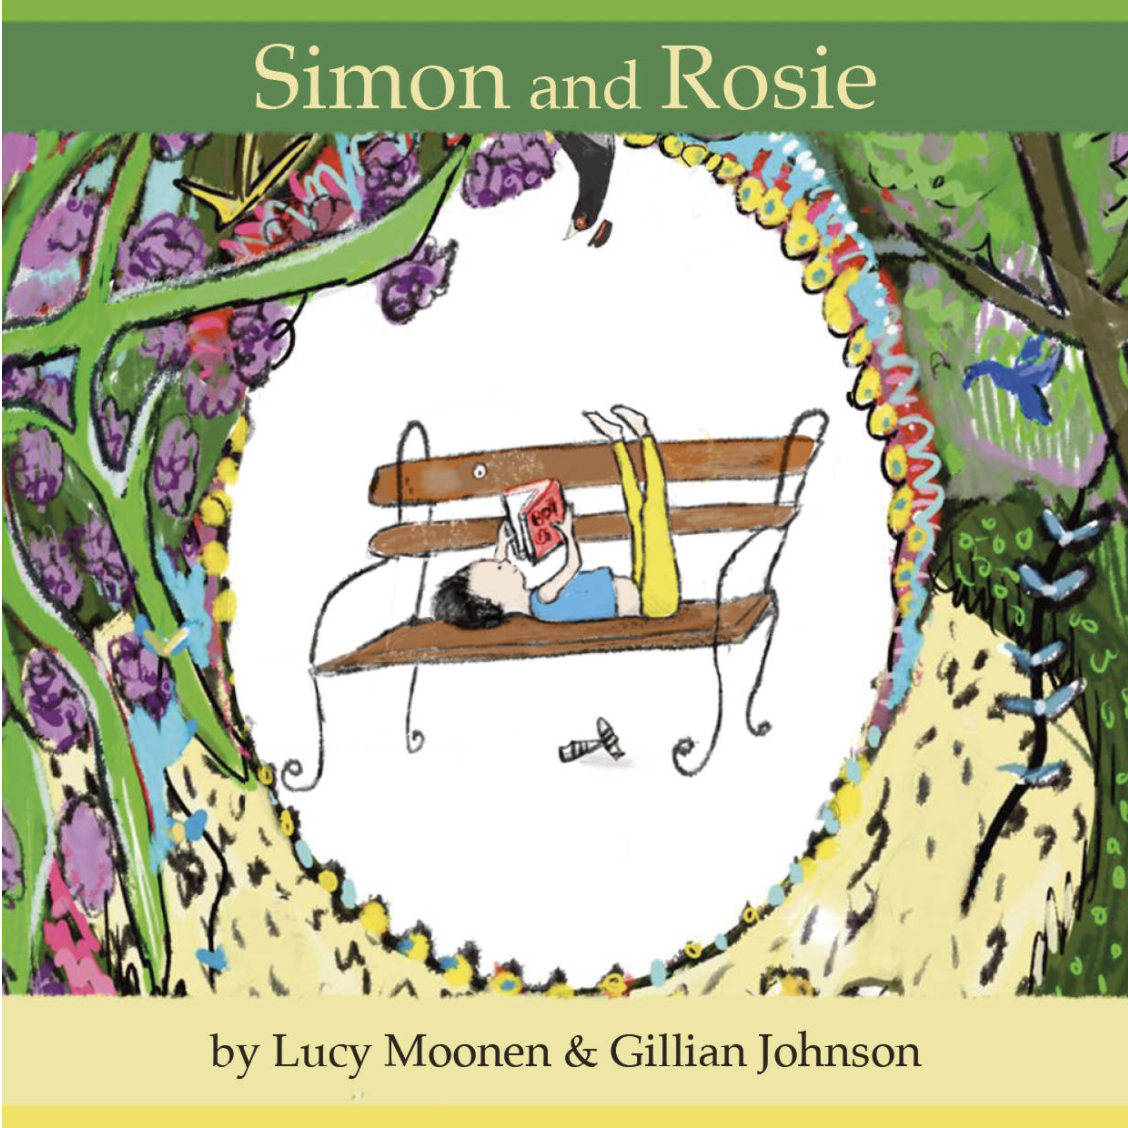 Simon and Rosie